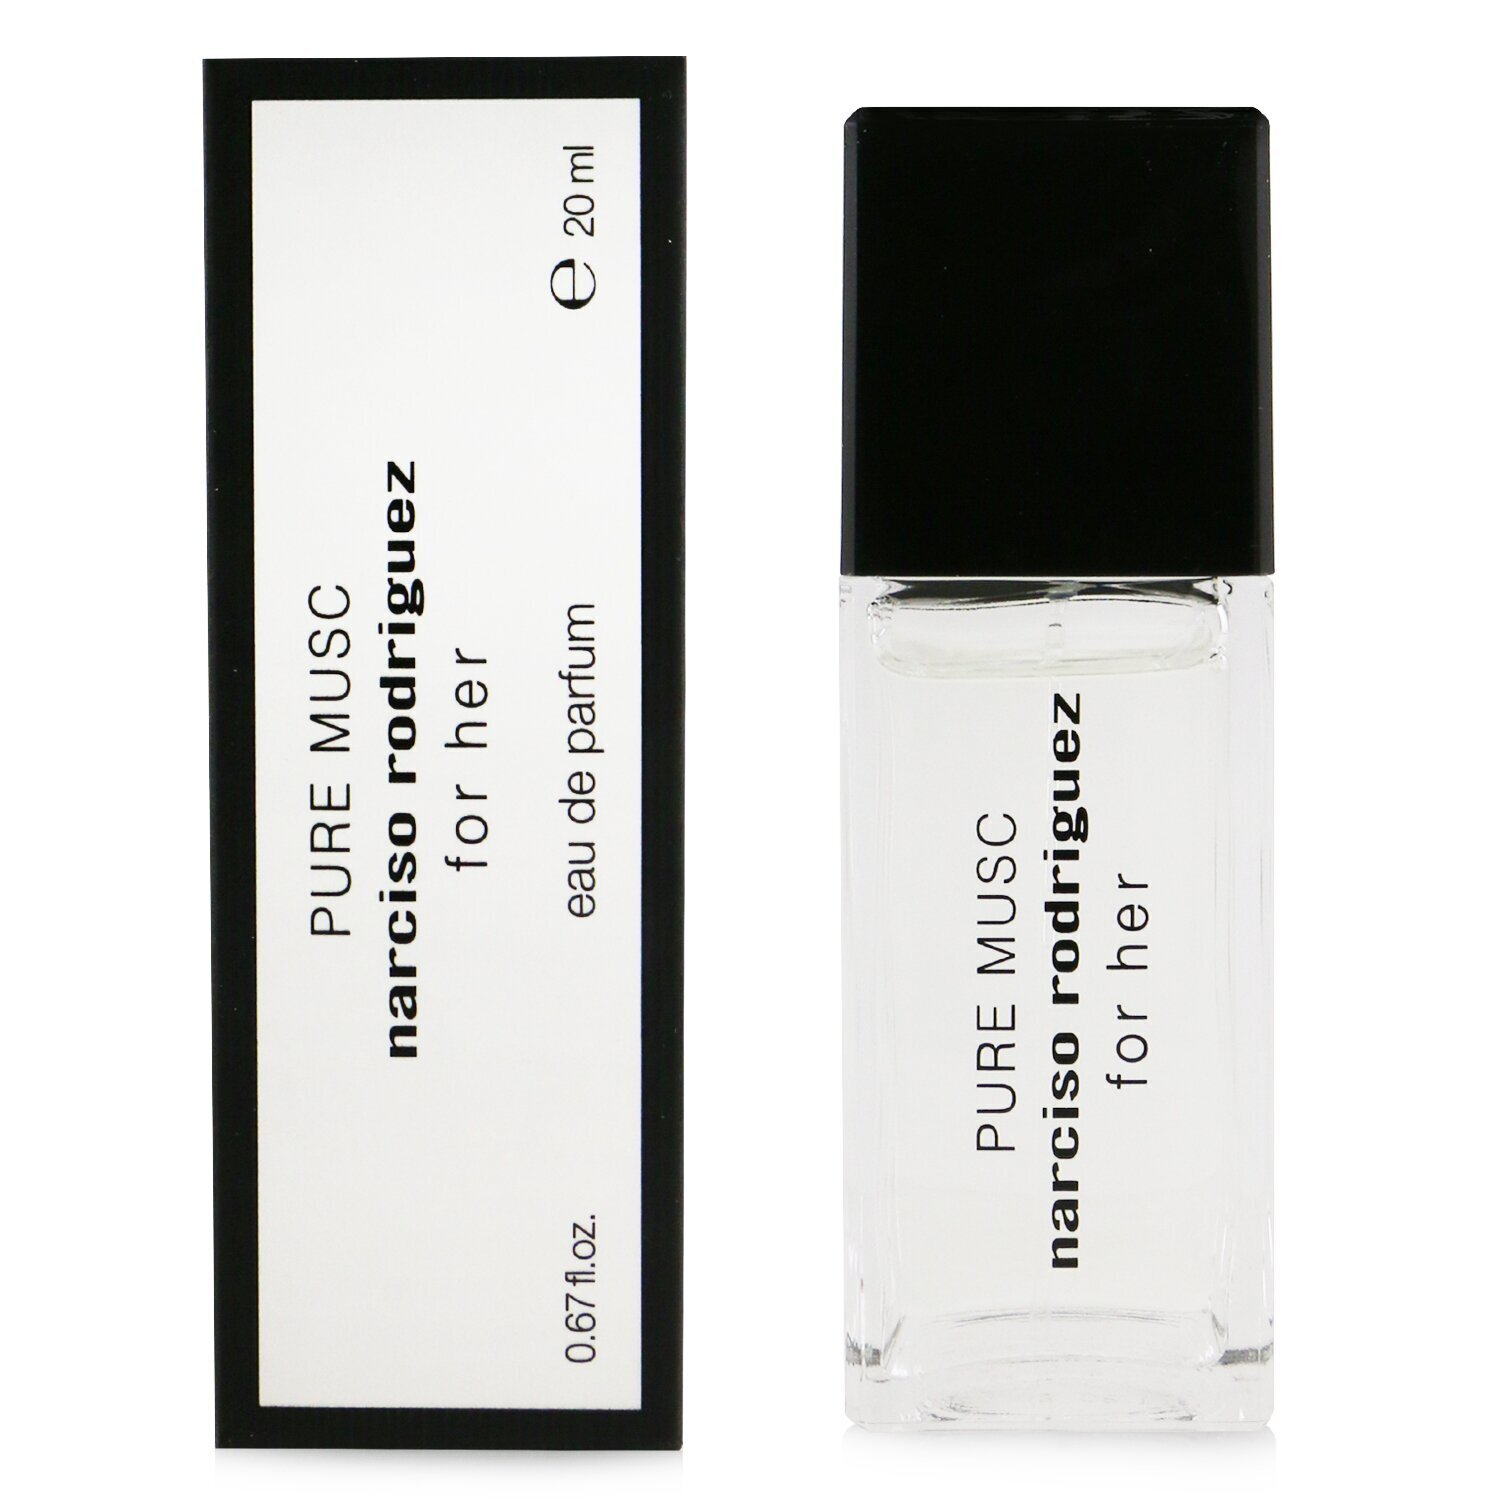 Narciso Rodriguez - Pure Musc For Her淡香水噴霧(限量版2020)